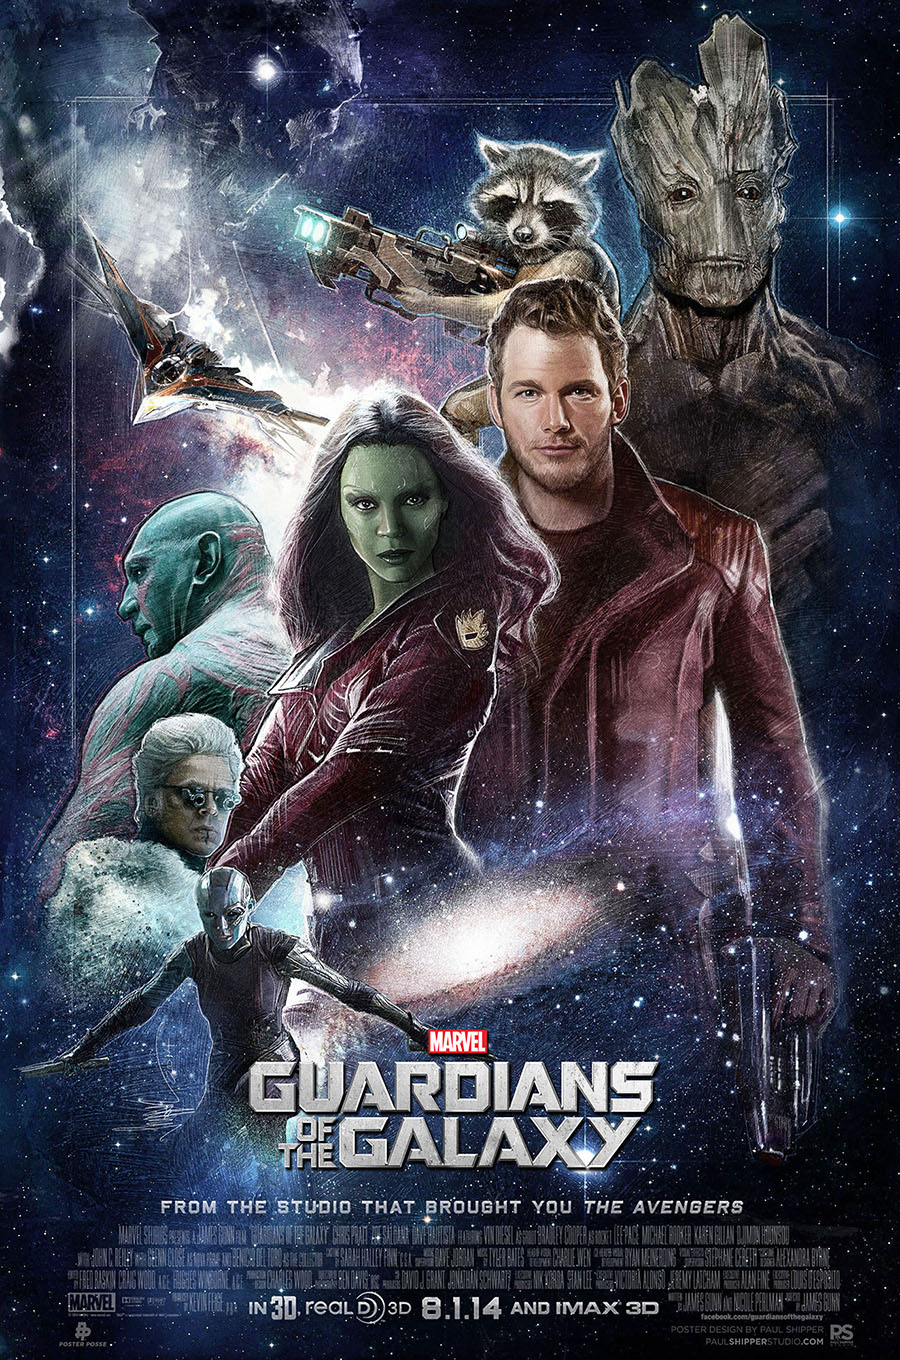 Guardian-of-the-galaxy-high-quality-printable-posters-and-wallpapers